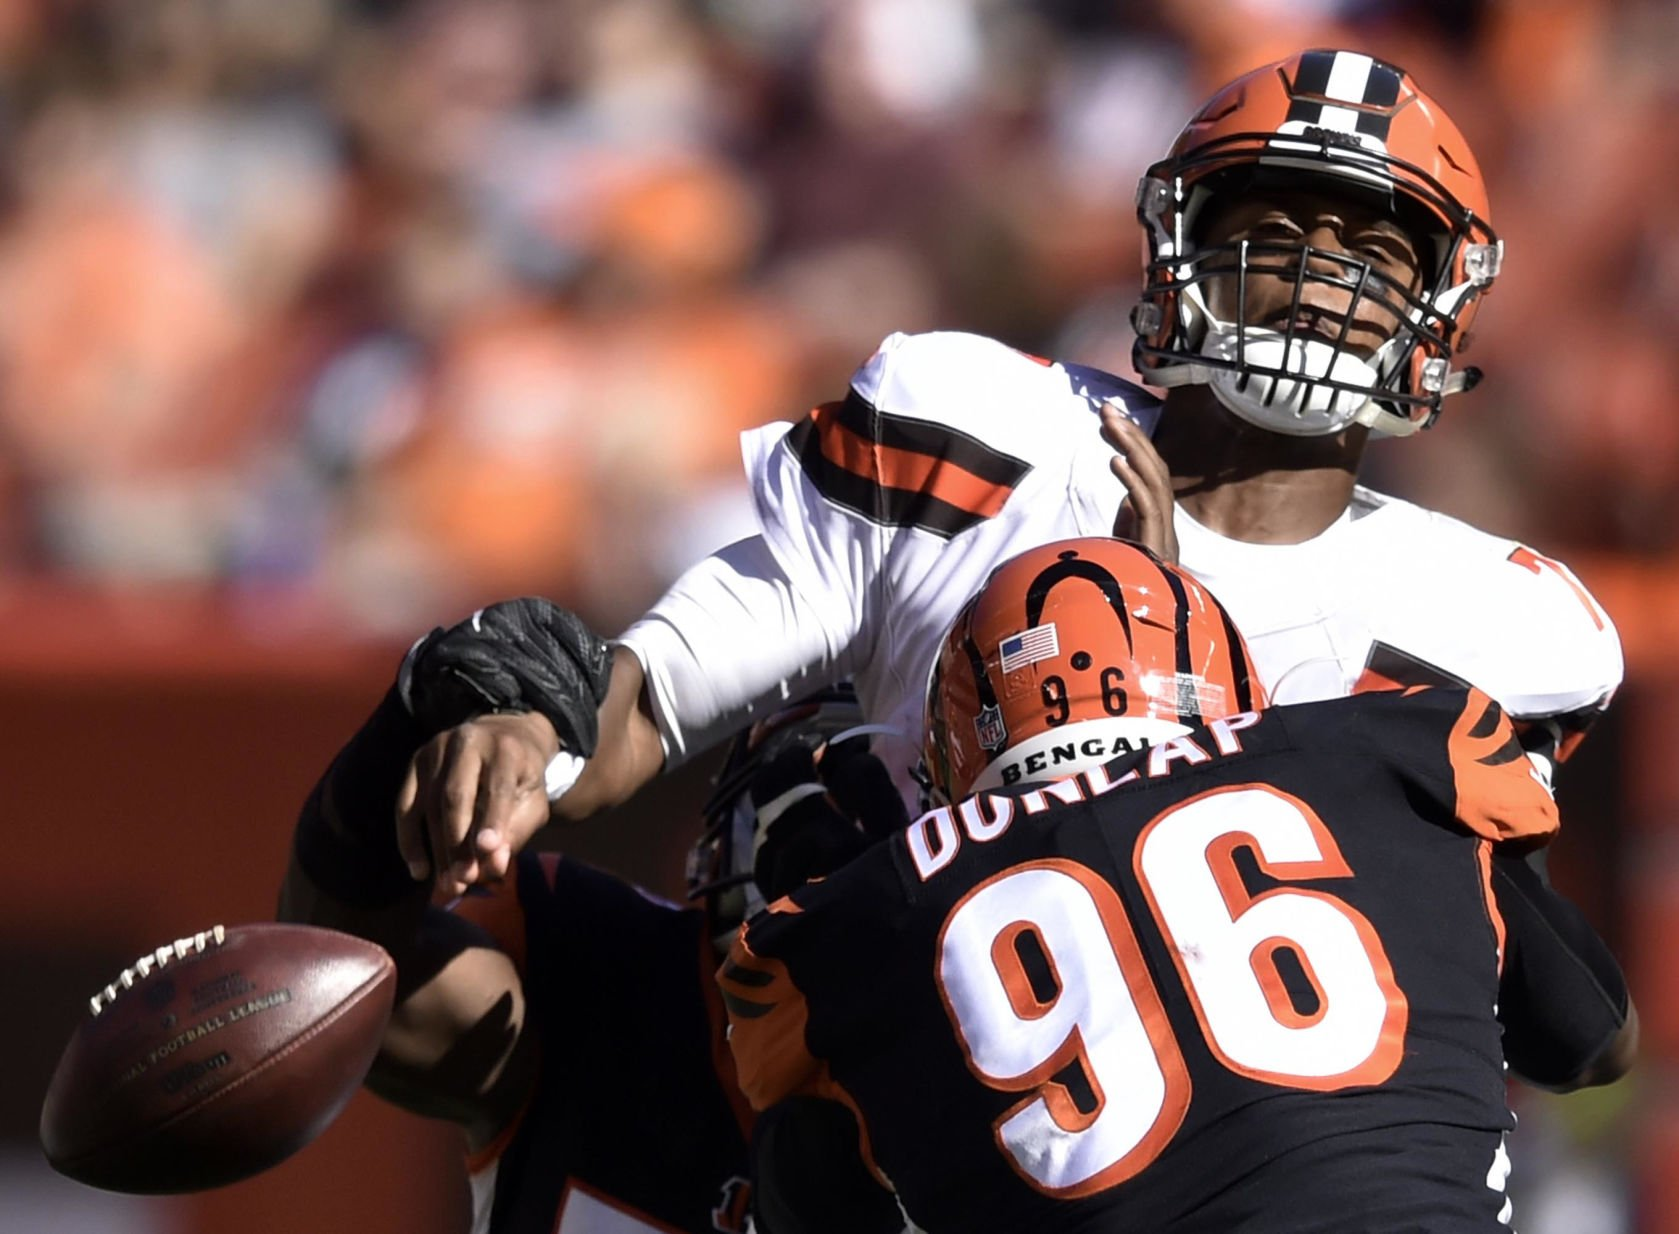 Myles Garrett's first sack would be like a 'fat guy touchdown'